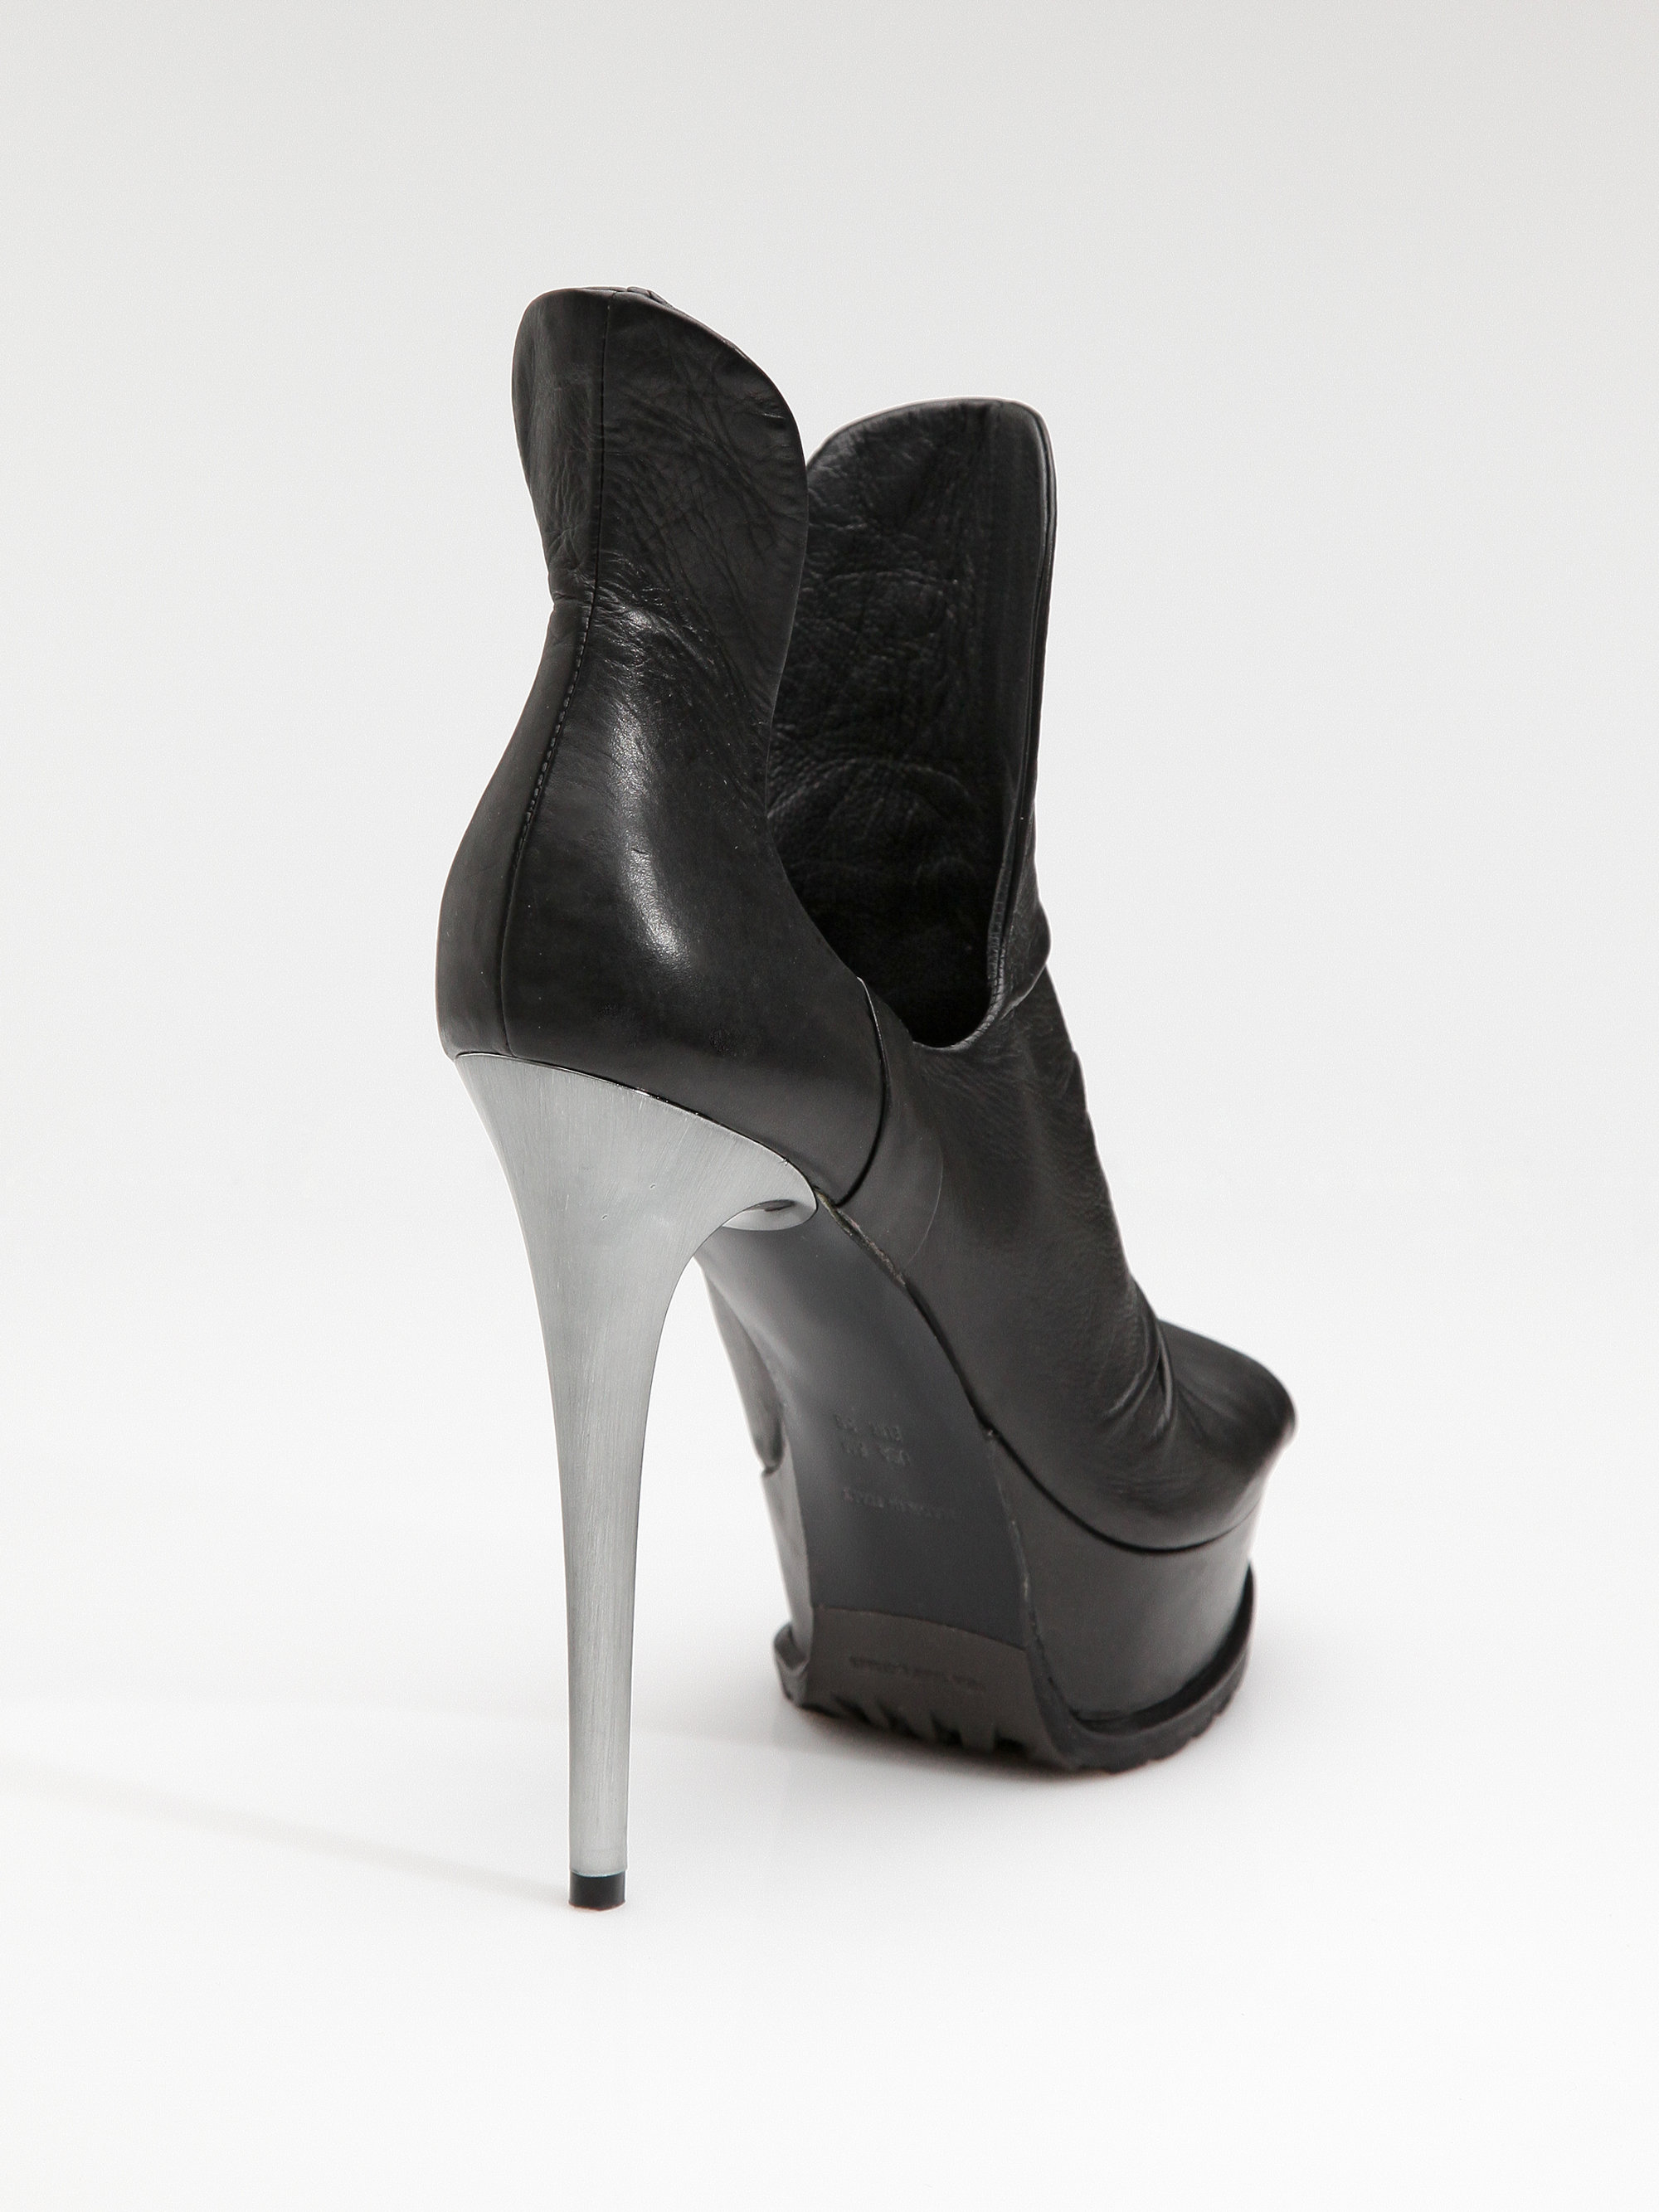 Vera Wang Round-Toe Platform Boots outlet with credit card cheap with credit card free shipping amazon zqha68